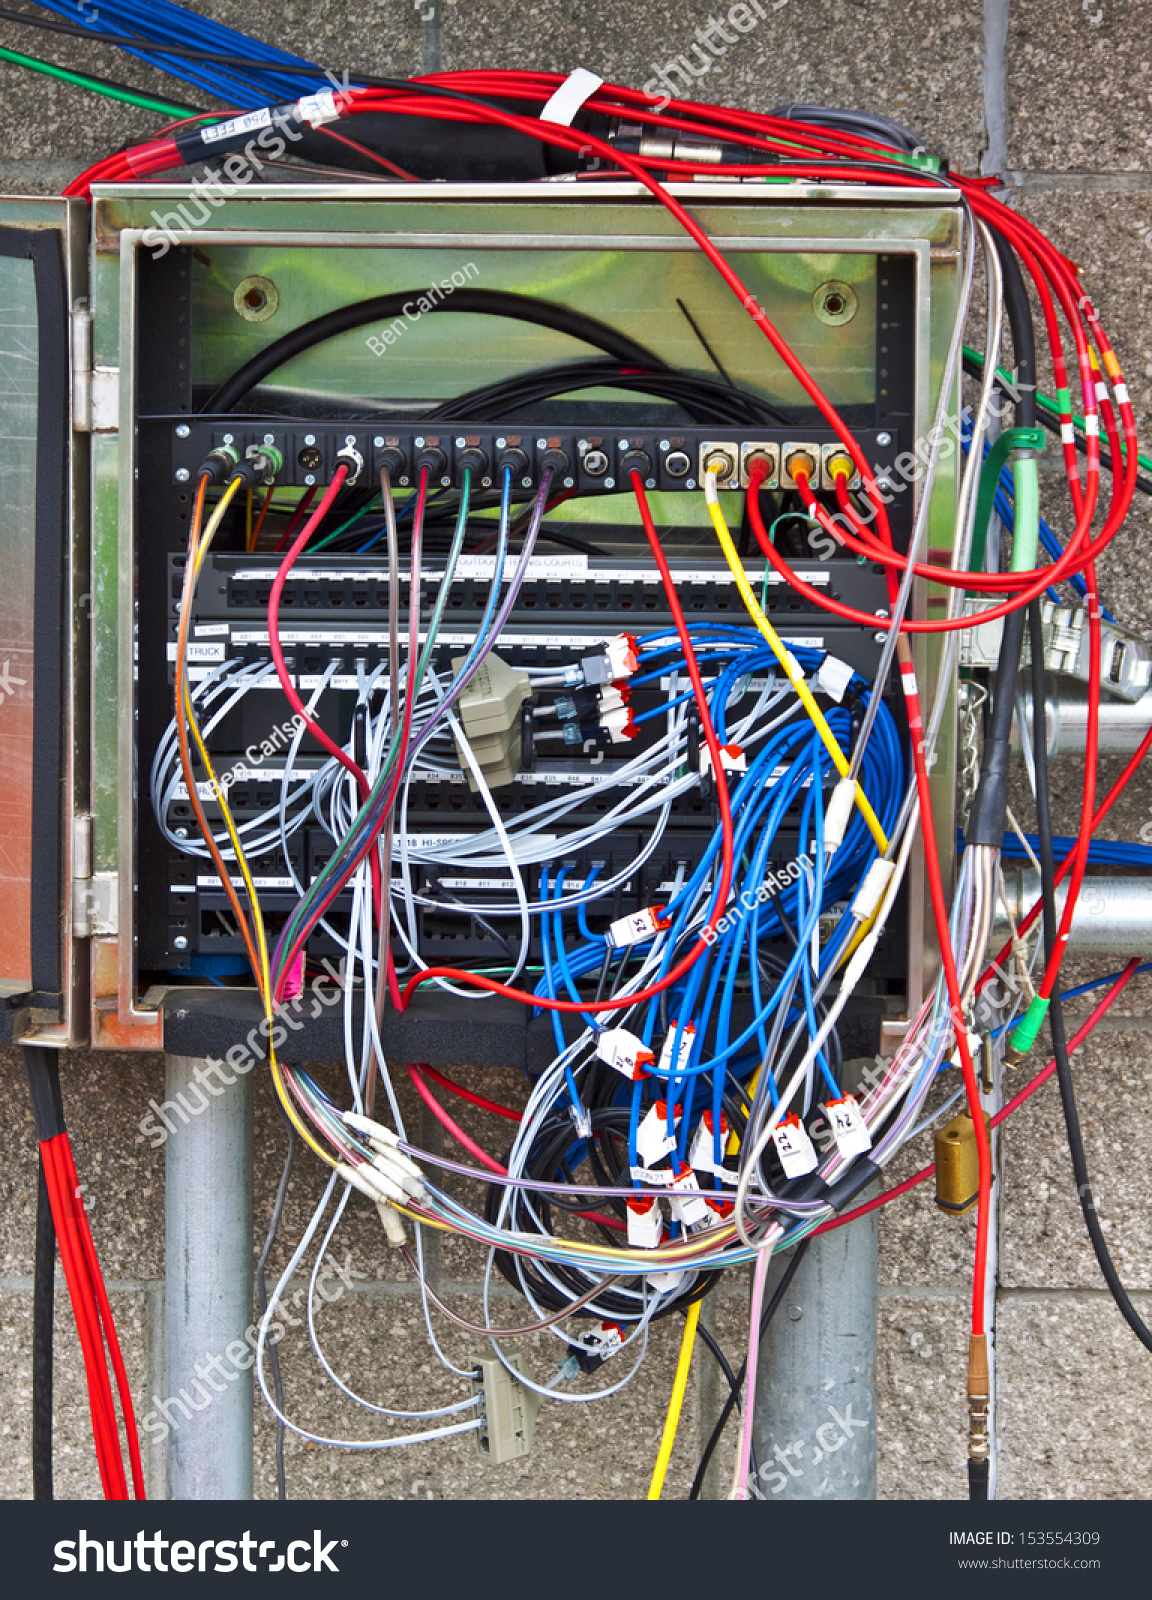 hight resolution of where is the wiring diagram this box has many more video audio wires than